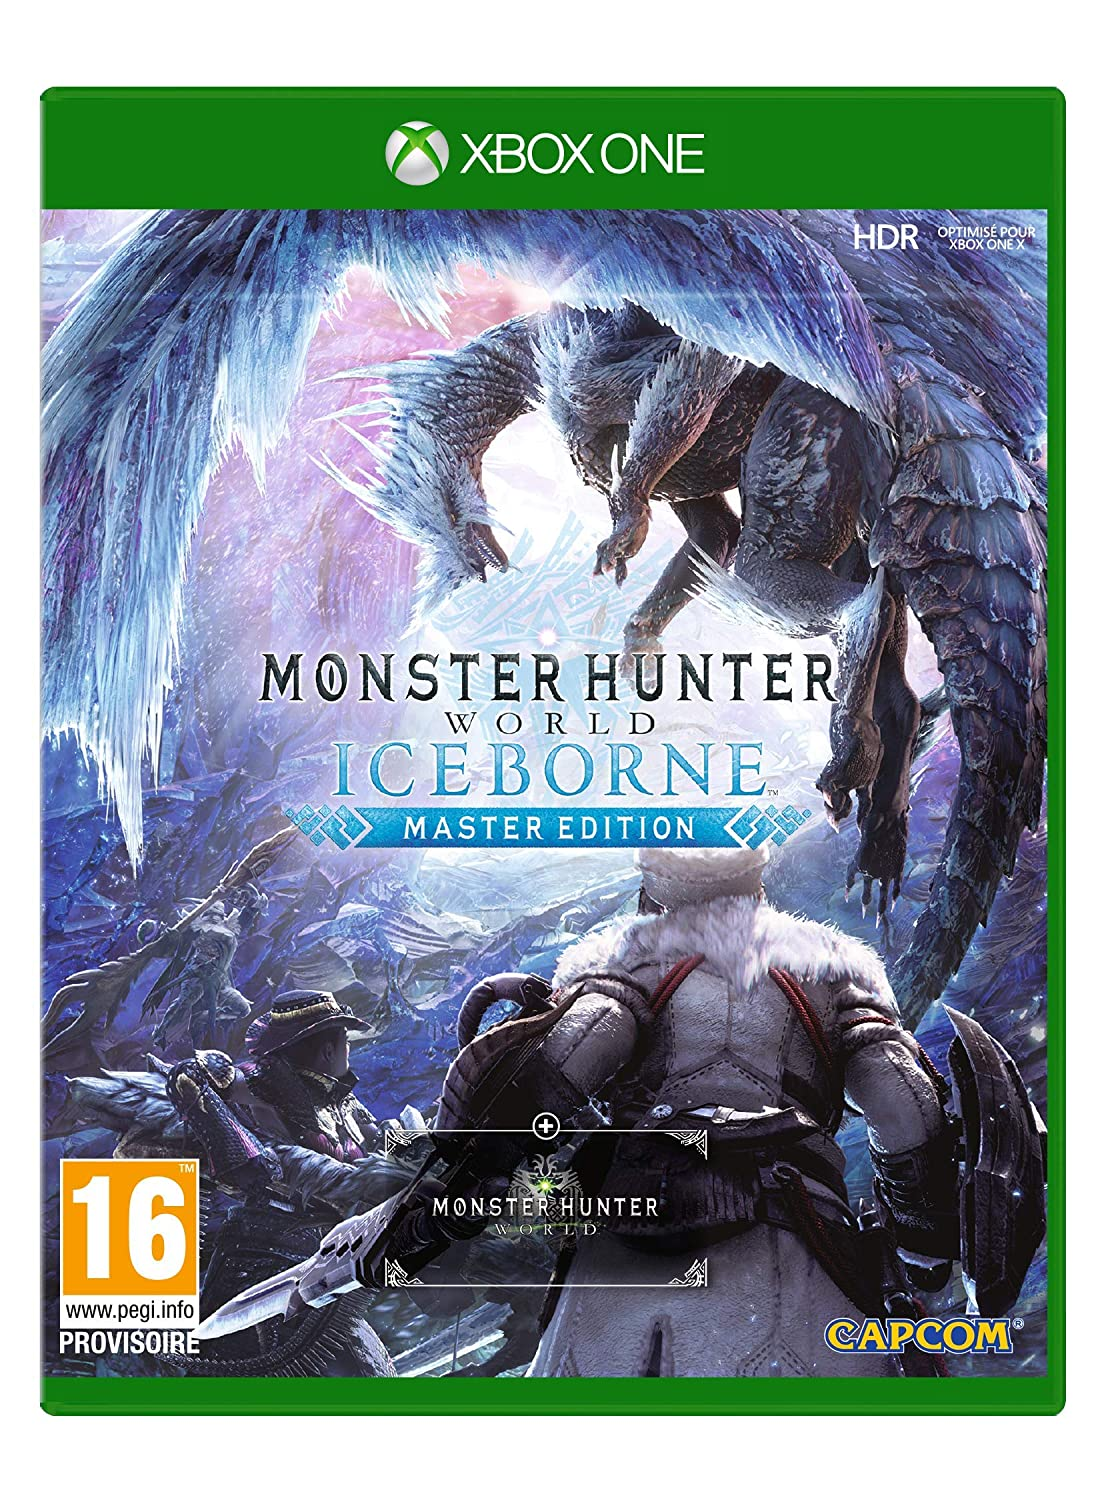 [2019-09-06]Monster Hunter World: Iceborne Master Edition PS4/one 91v9QrupbQL._SL1500_